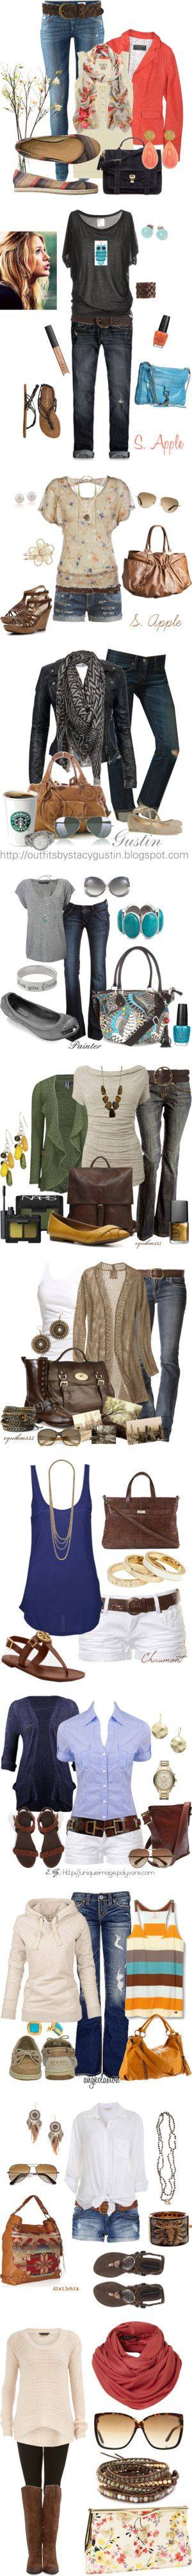 love all of these!: Style, Cute Ideas, Cute Outfits, New Wardrobes, Fall Outfits, Fall Fashion, Outfits Ideas, Closet, Casual Outfits